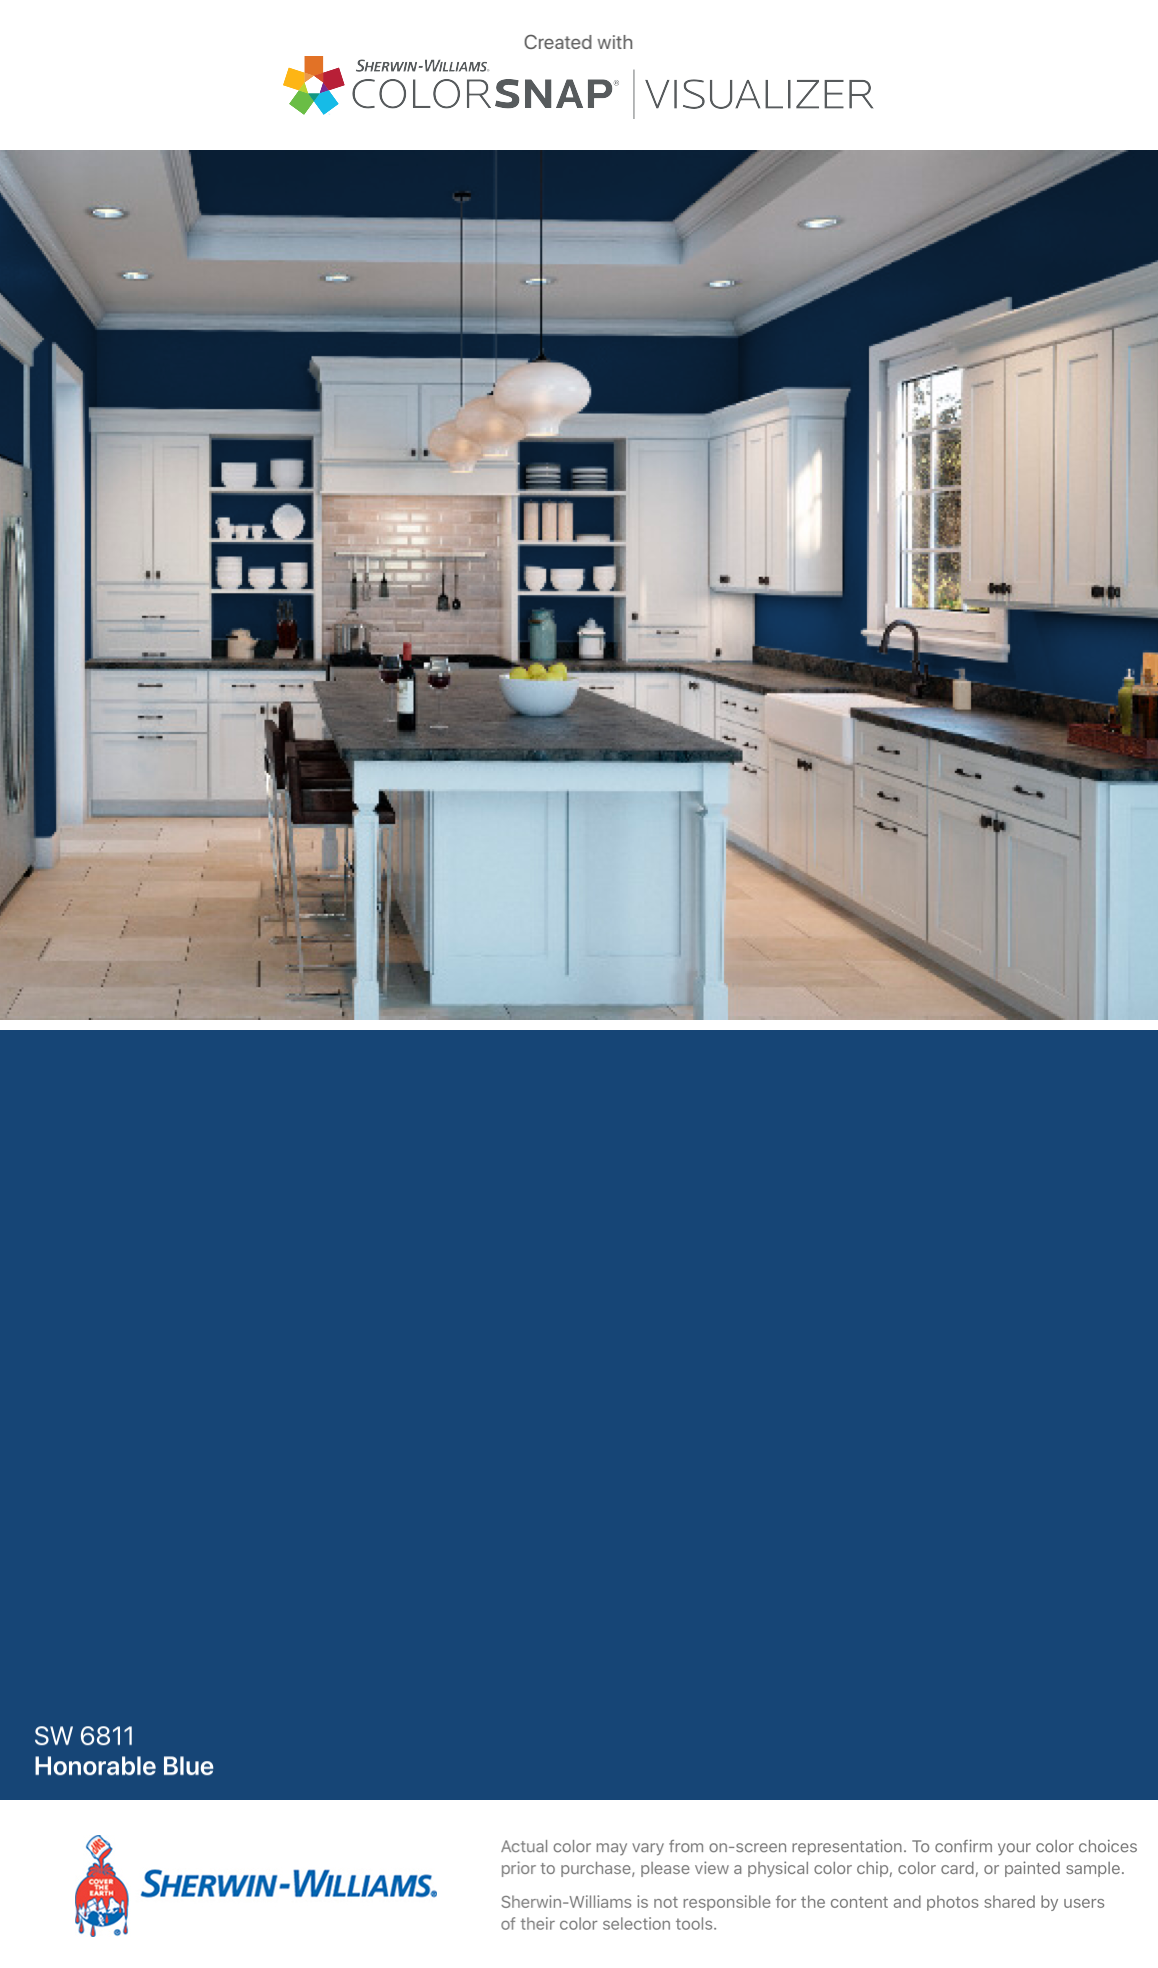 I Found This Color With Colorsnap Visualizer For Iphone By Sherwin Williams Honorable Blue Sw 6811 Sherwin Williams Silver Strand Paint Color App Home